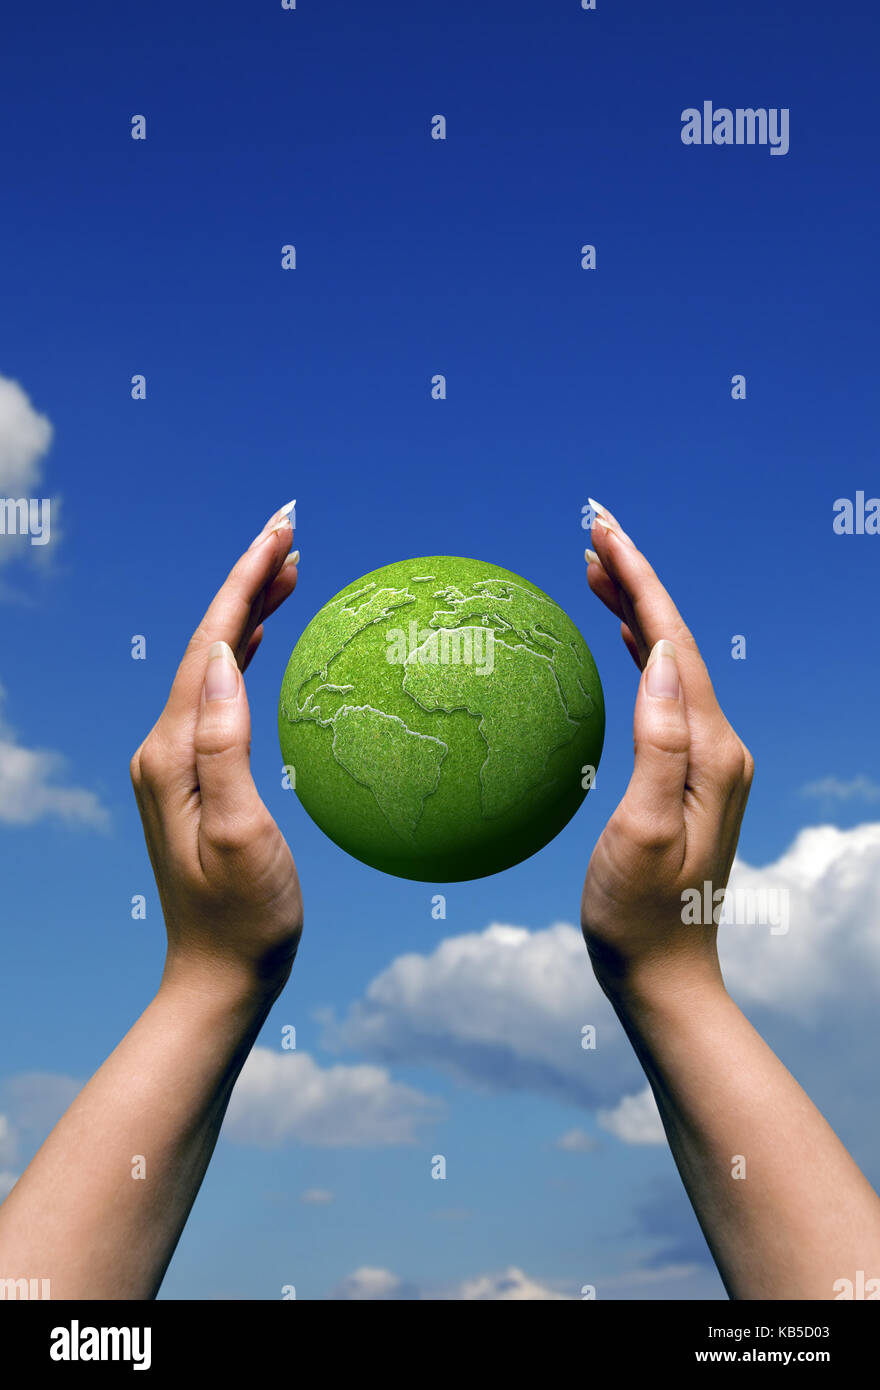 female hands around a green earth globe, protecting our planet and ecology concept - Stock Image